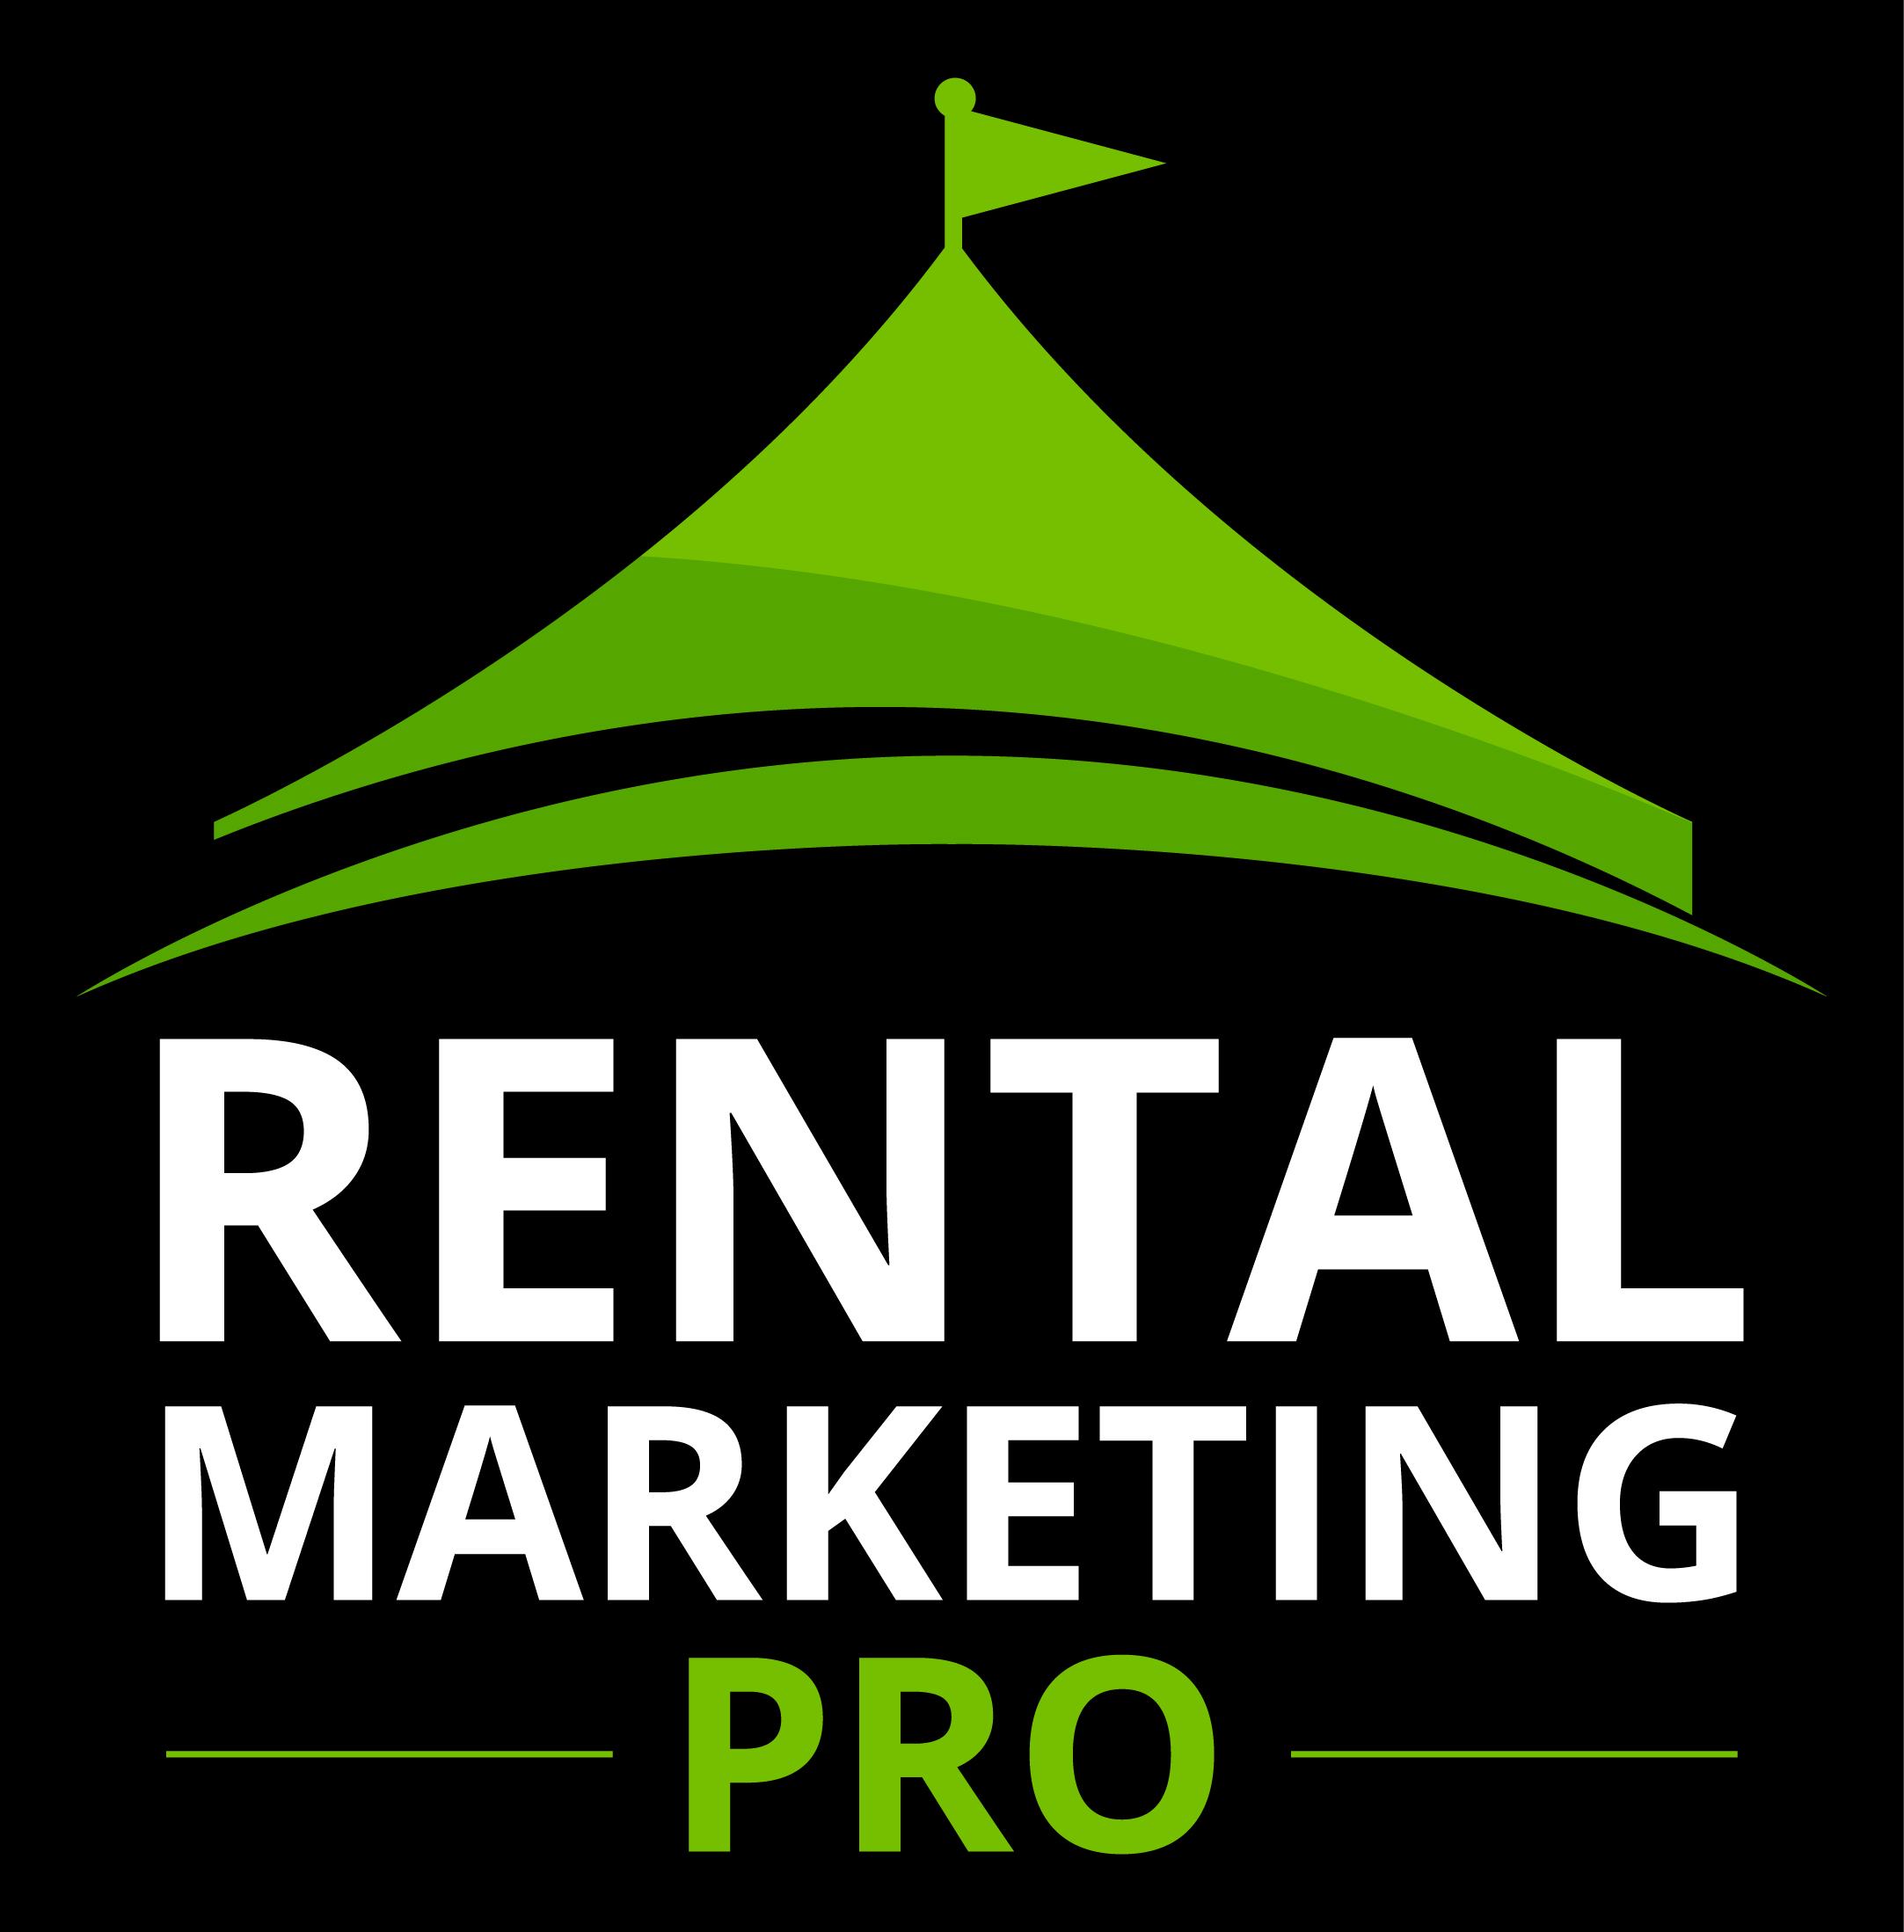 Rentalmarketingpro logo whitetext